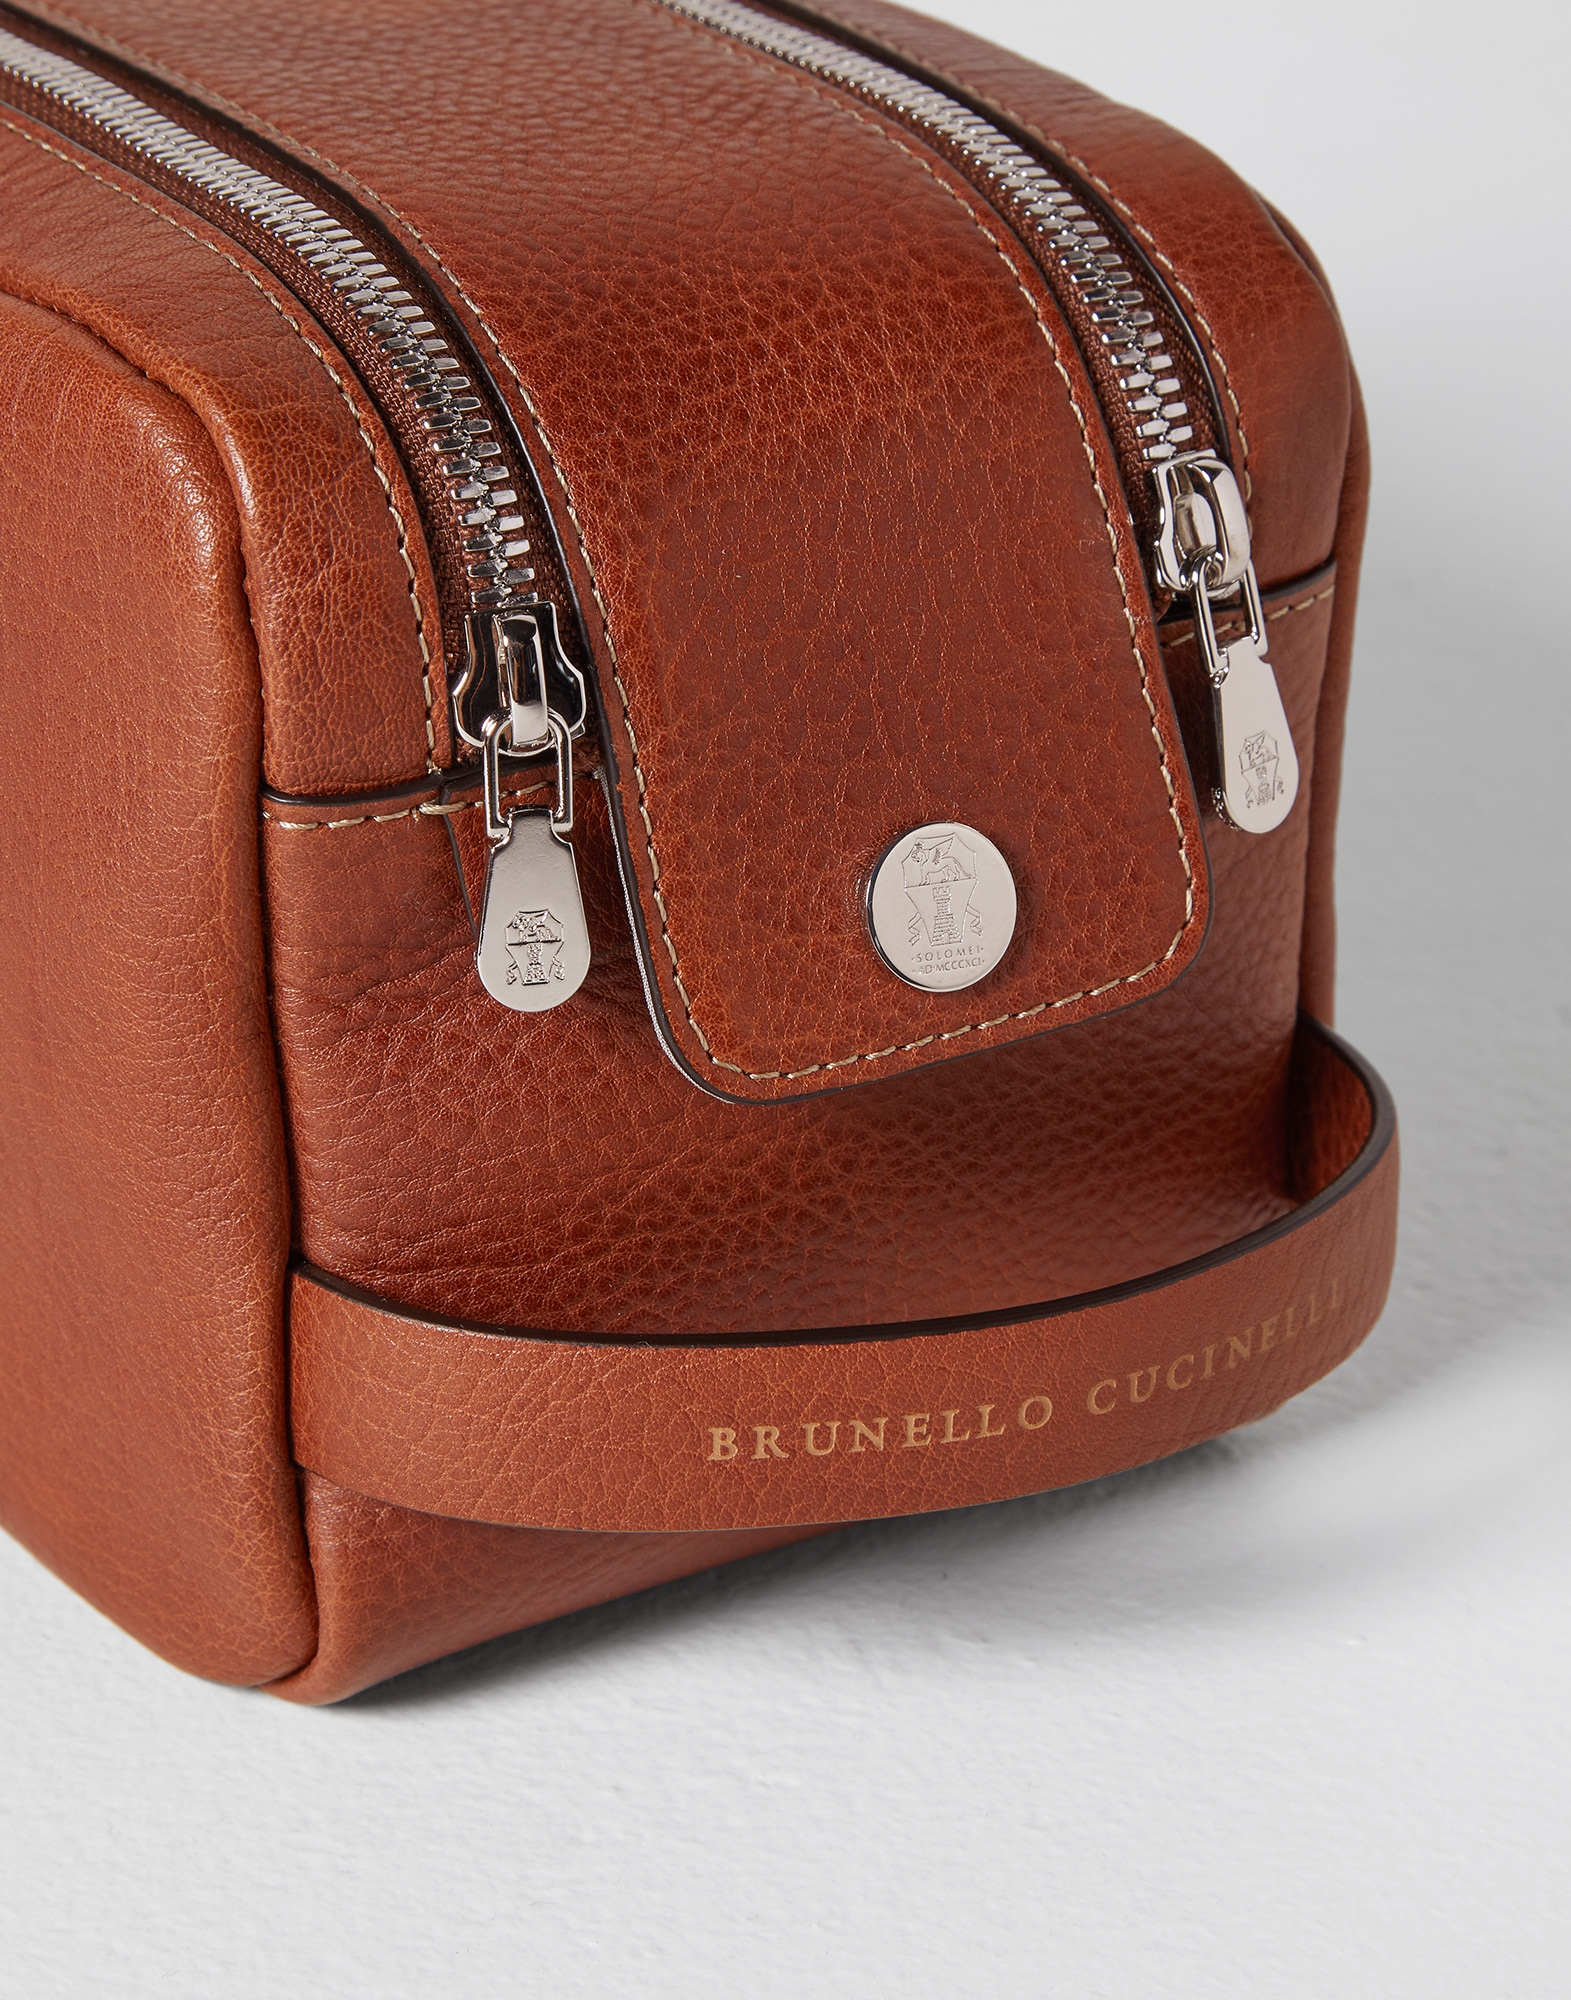 Beauty Case Rum Man 1 - Brunello Cucinelli